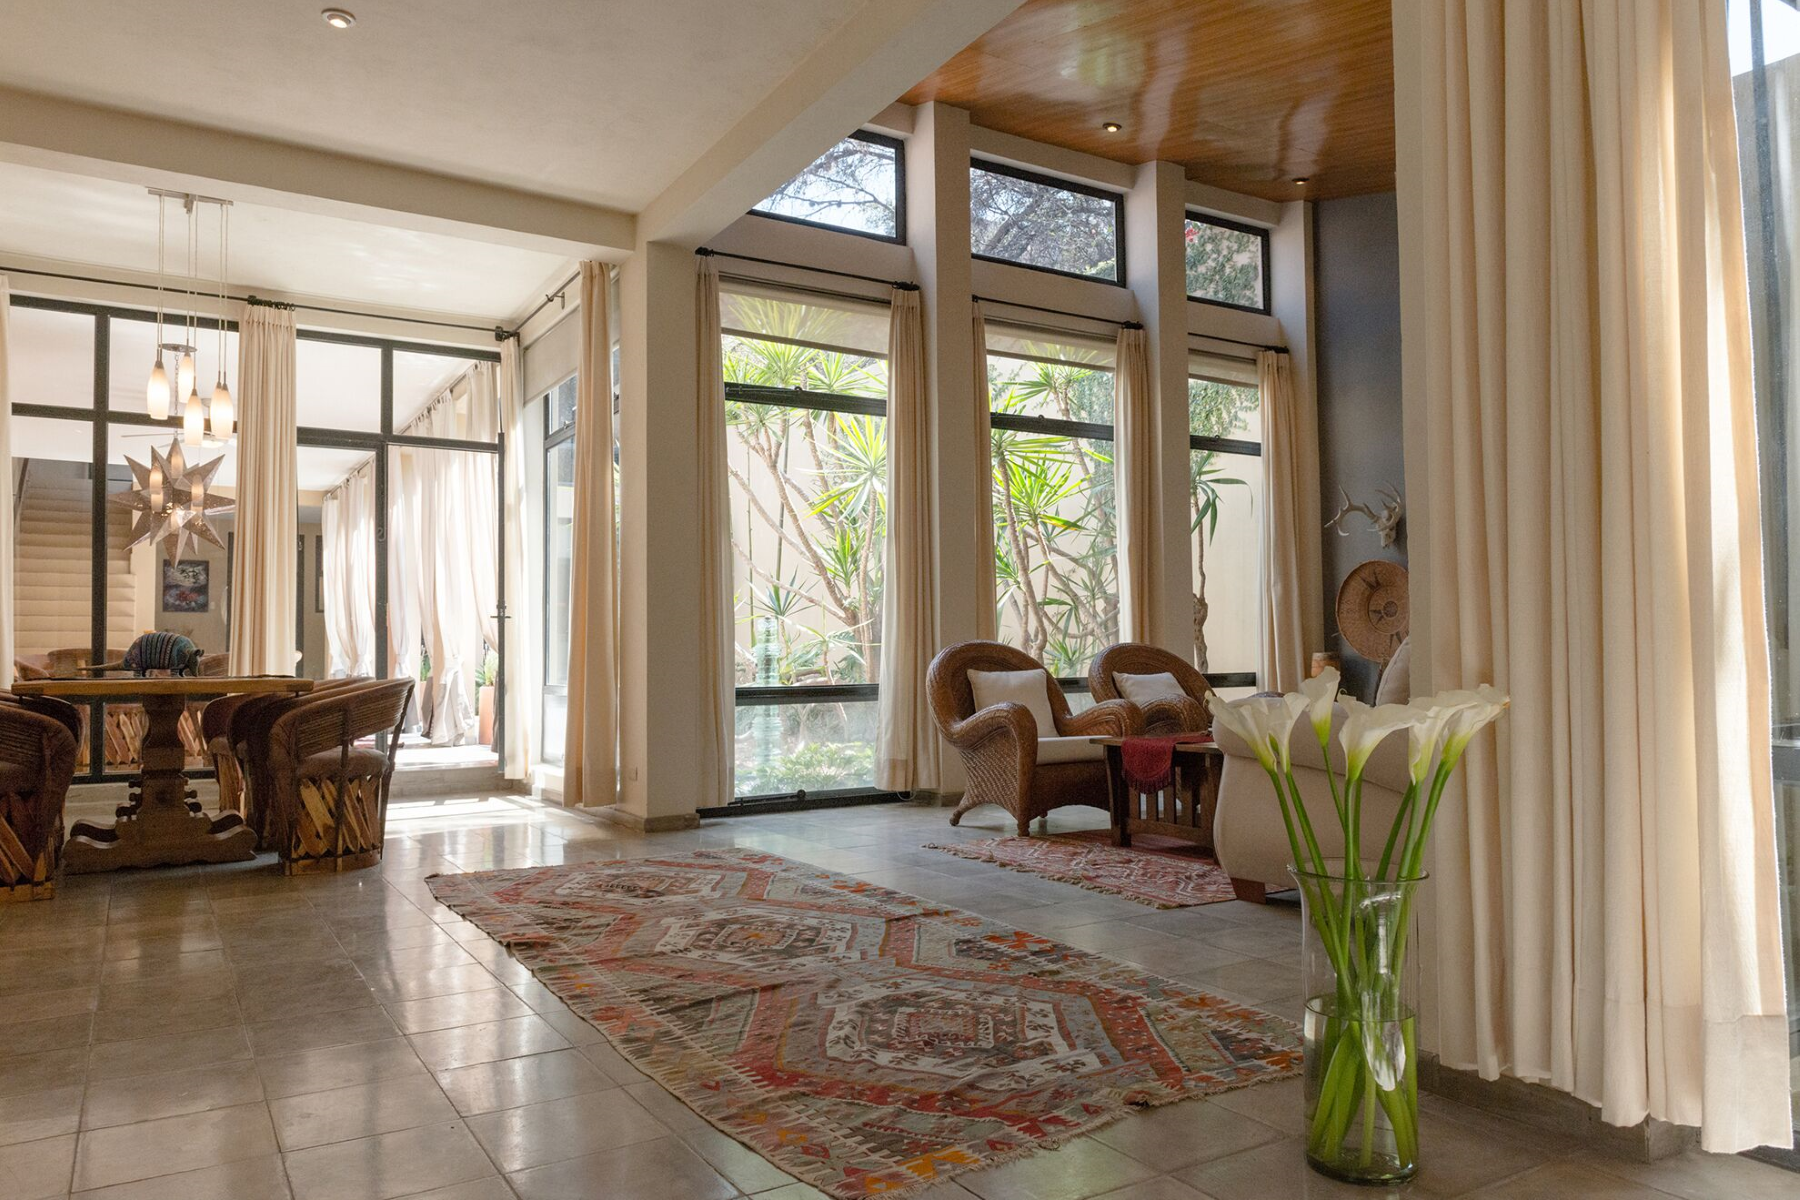 18. Single Family Homes for Sale at Casa de la Luz Calzada de la Luz 66 San Miguel De Allende, Guanajuato 37700 Mexico